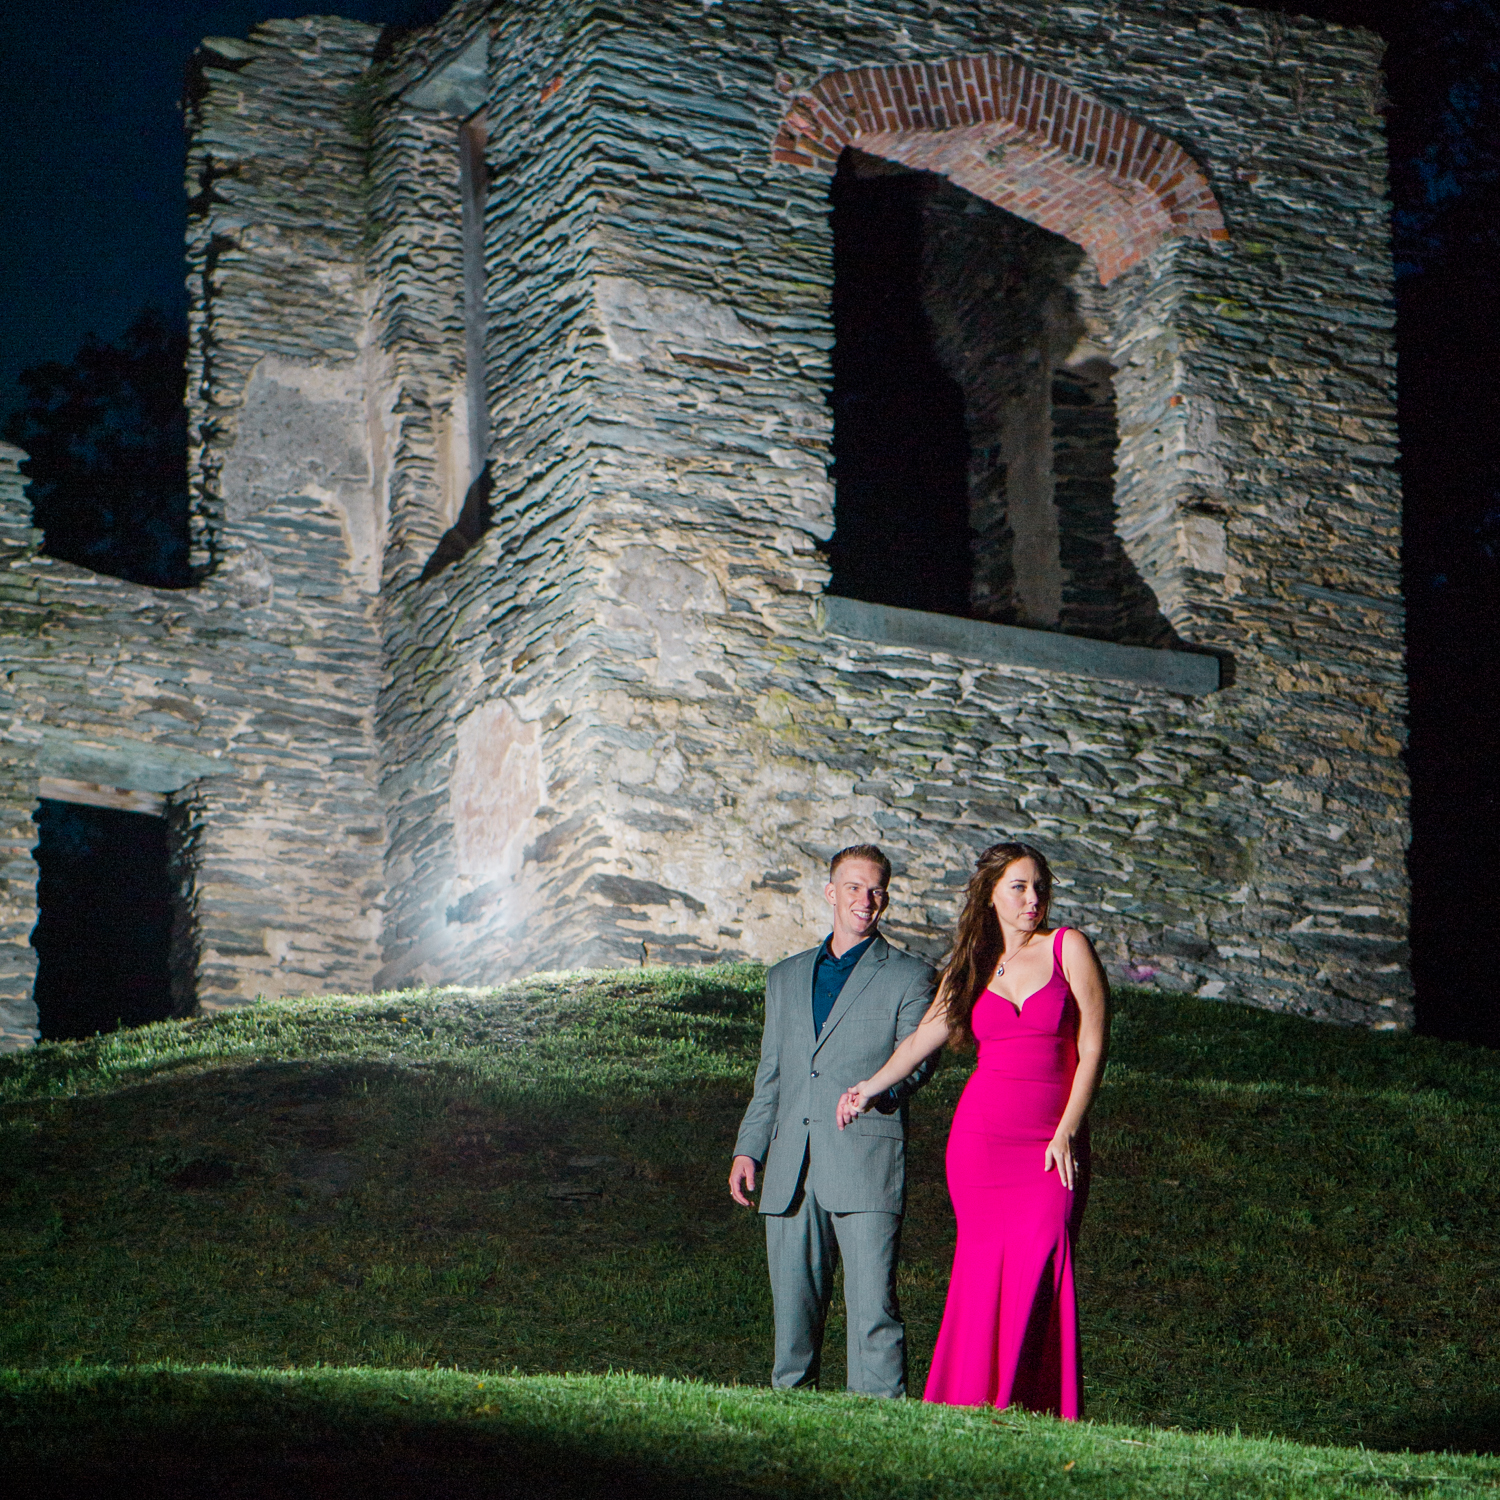 callie-and-chris-harpers-ferry-church-ruins-engagement-21.jpg